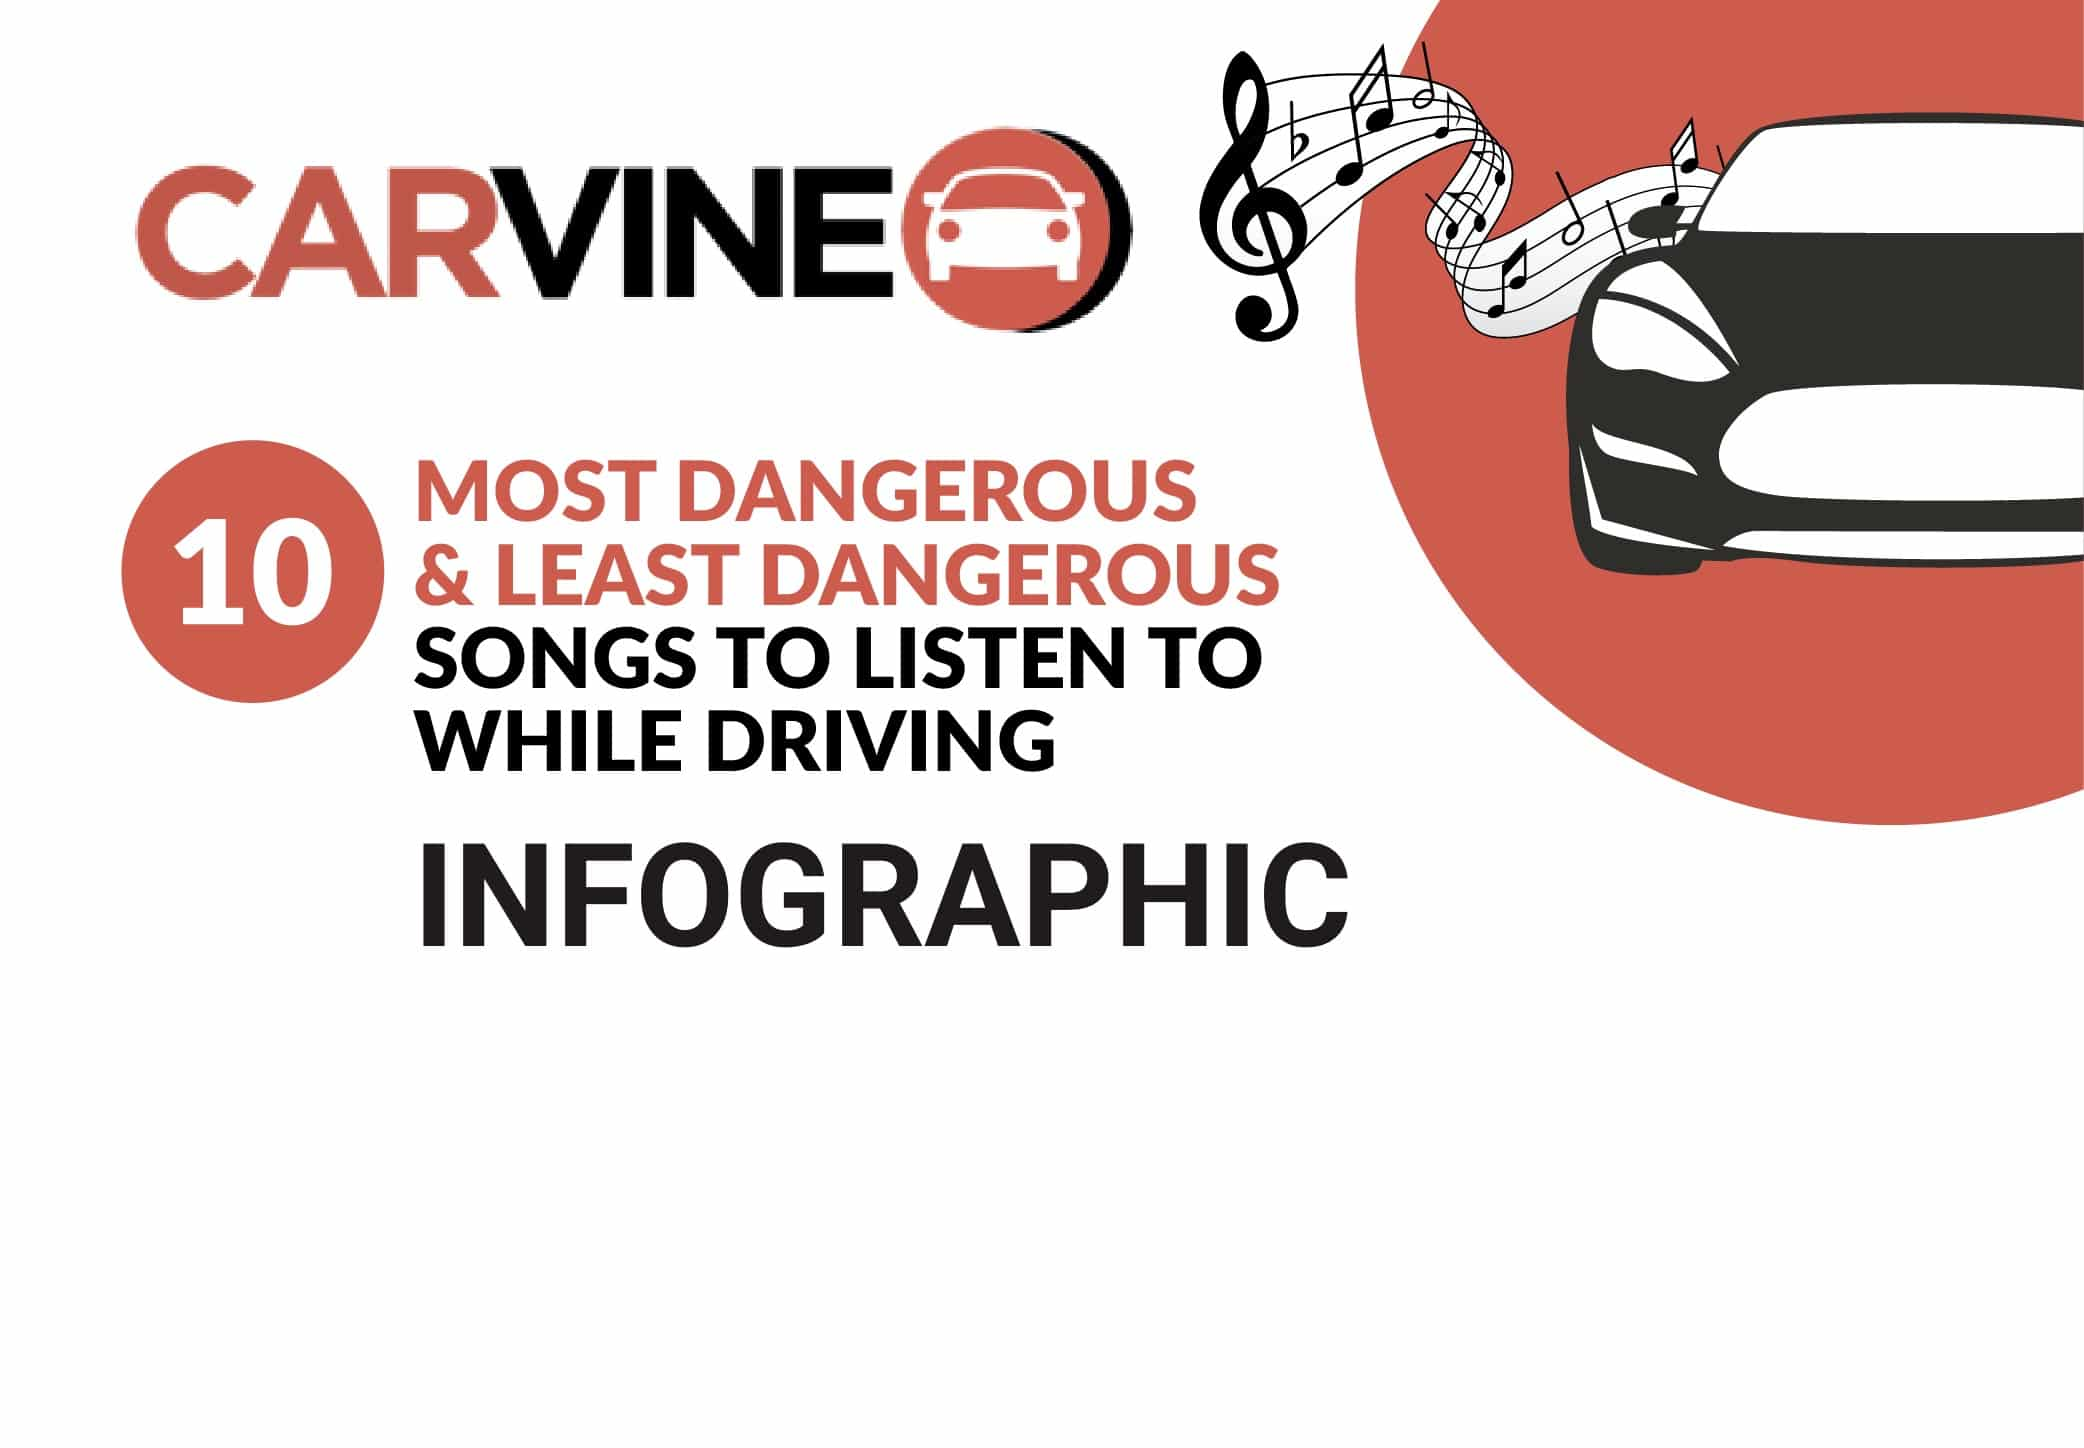 Most Dangerous & Least Dangerous Songs to Listen to While Driving